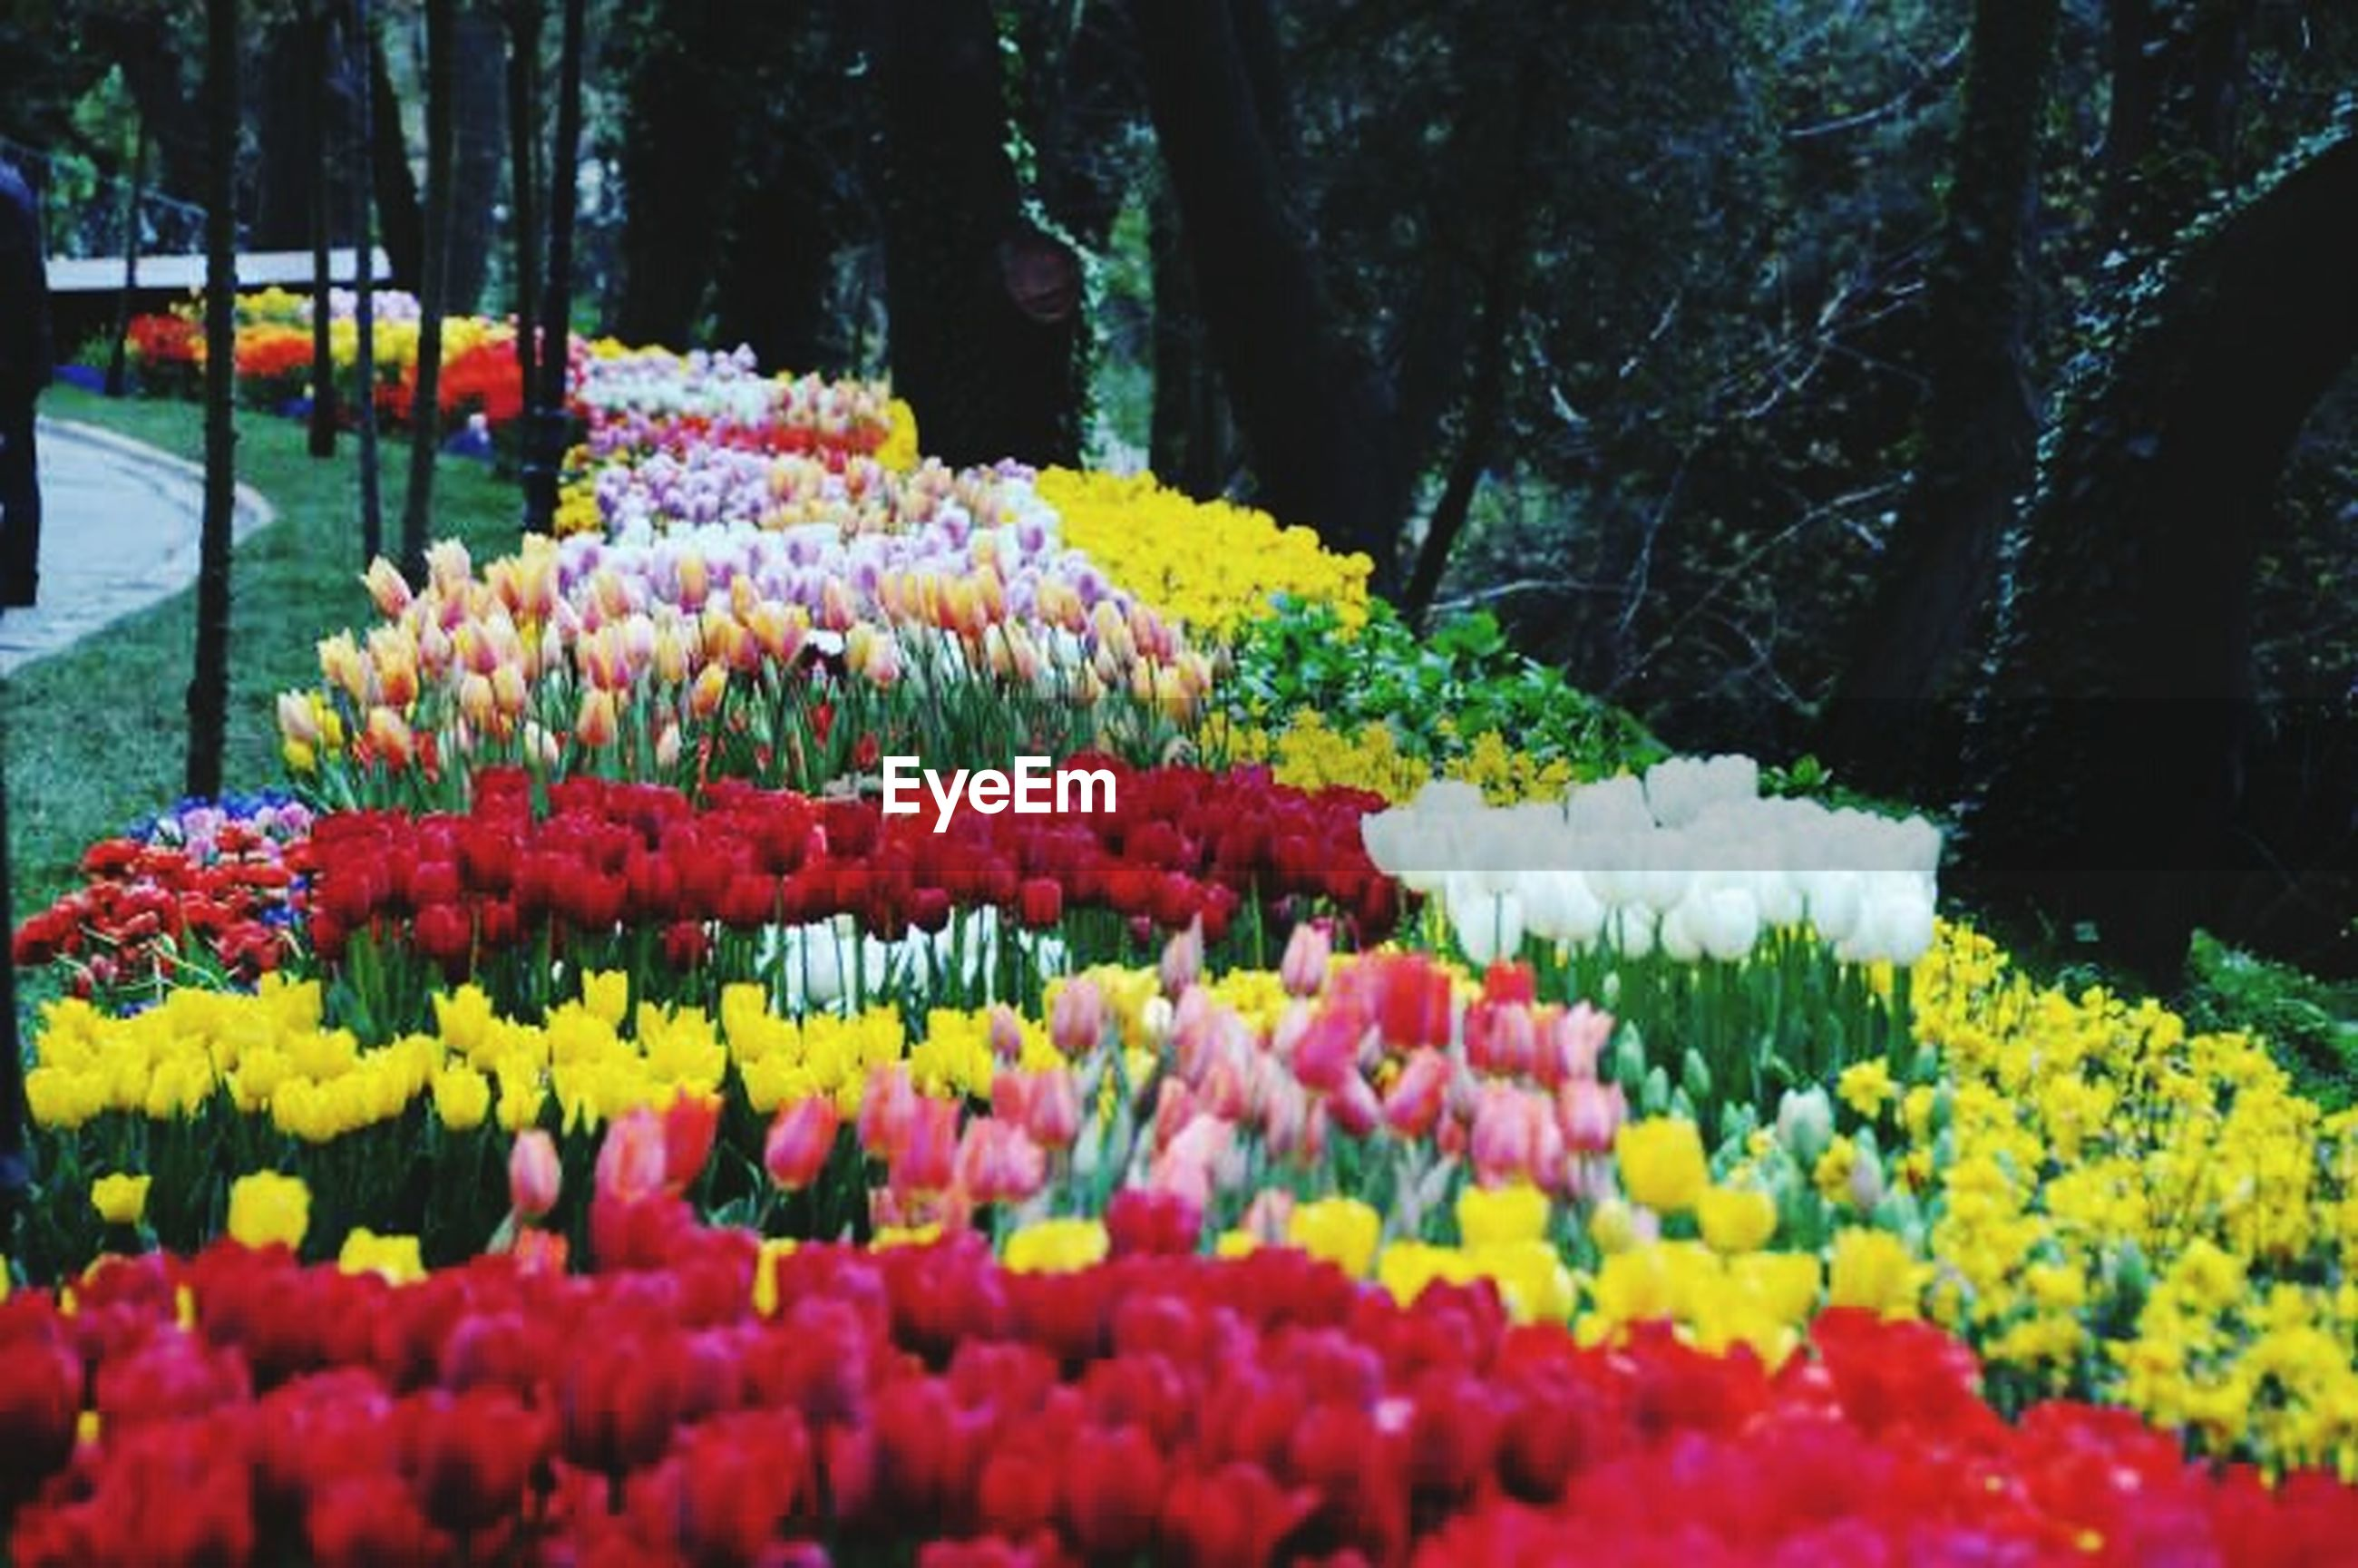 flower, freshness, fragility, growth, beauty in nature, abundance, tree, nature, park - man made space, blooming, yellow, red, petal, flowerbed, blossom, multi colored, in bloom, springtime, outdoors, plant